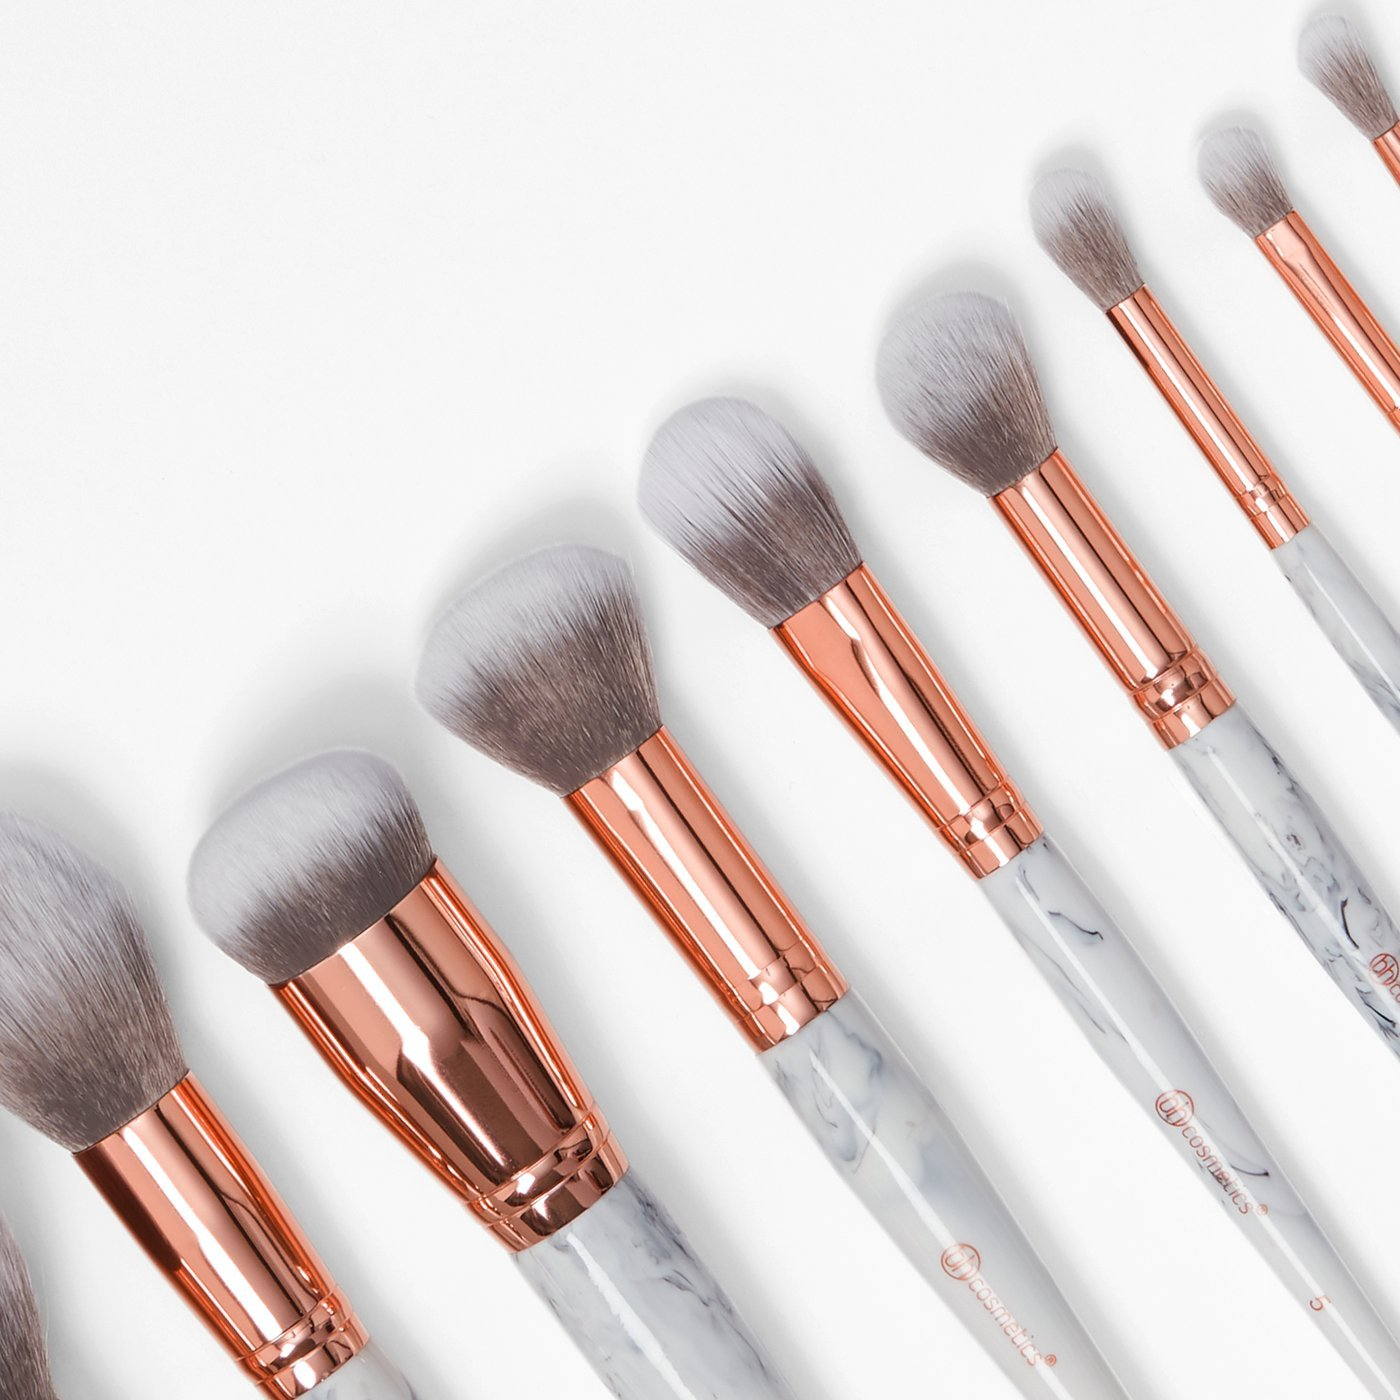 BH Marble Luxe 10 brush set